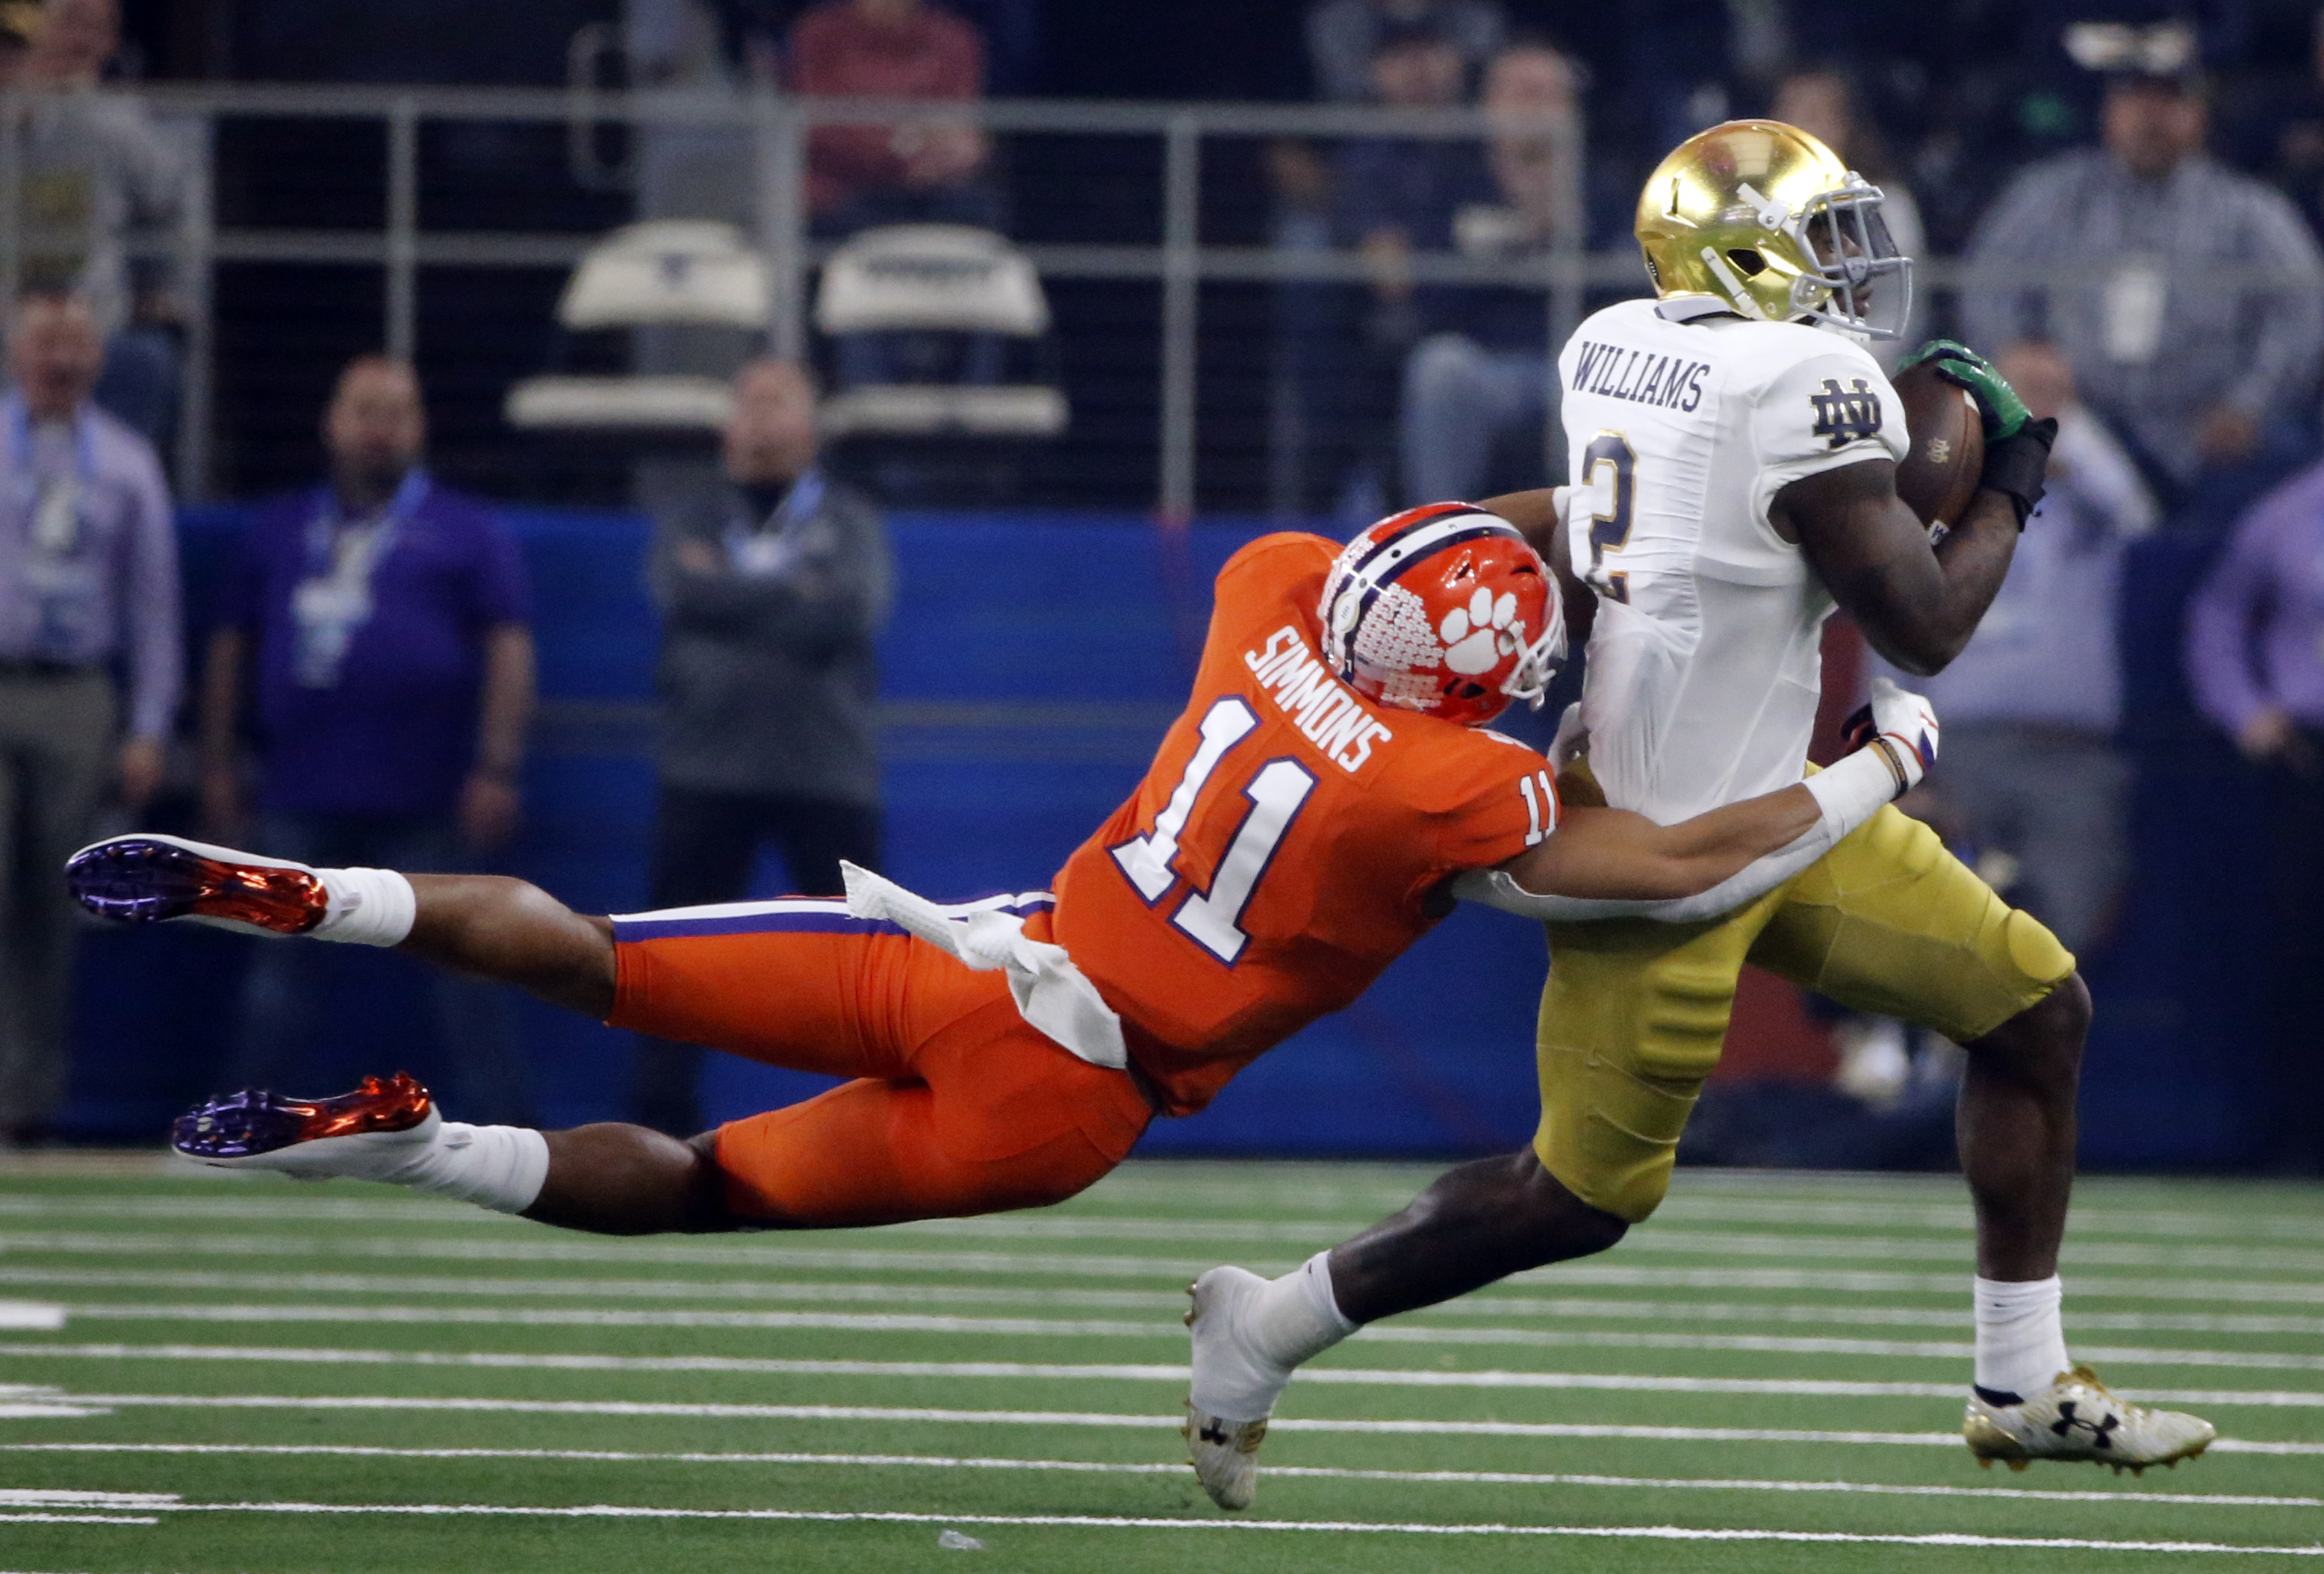 Clemson safety Isaiah Simmons (11) attempts to stop Notre Dame running back Dexter Williams (2) from gaining more yardage in the first half of the NCAA Cotton Bowl semi-final playoff football game, Saturday, Dec. 29, 2018, in Arlington, Texas. (AP Photo/Michael Ainsworth)